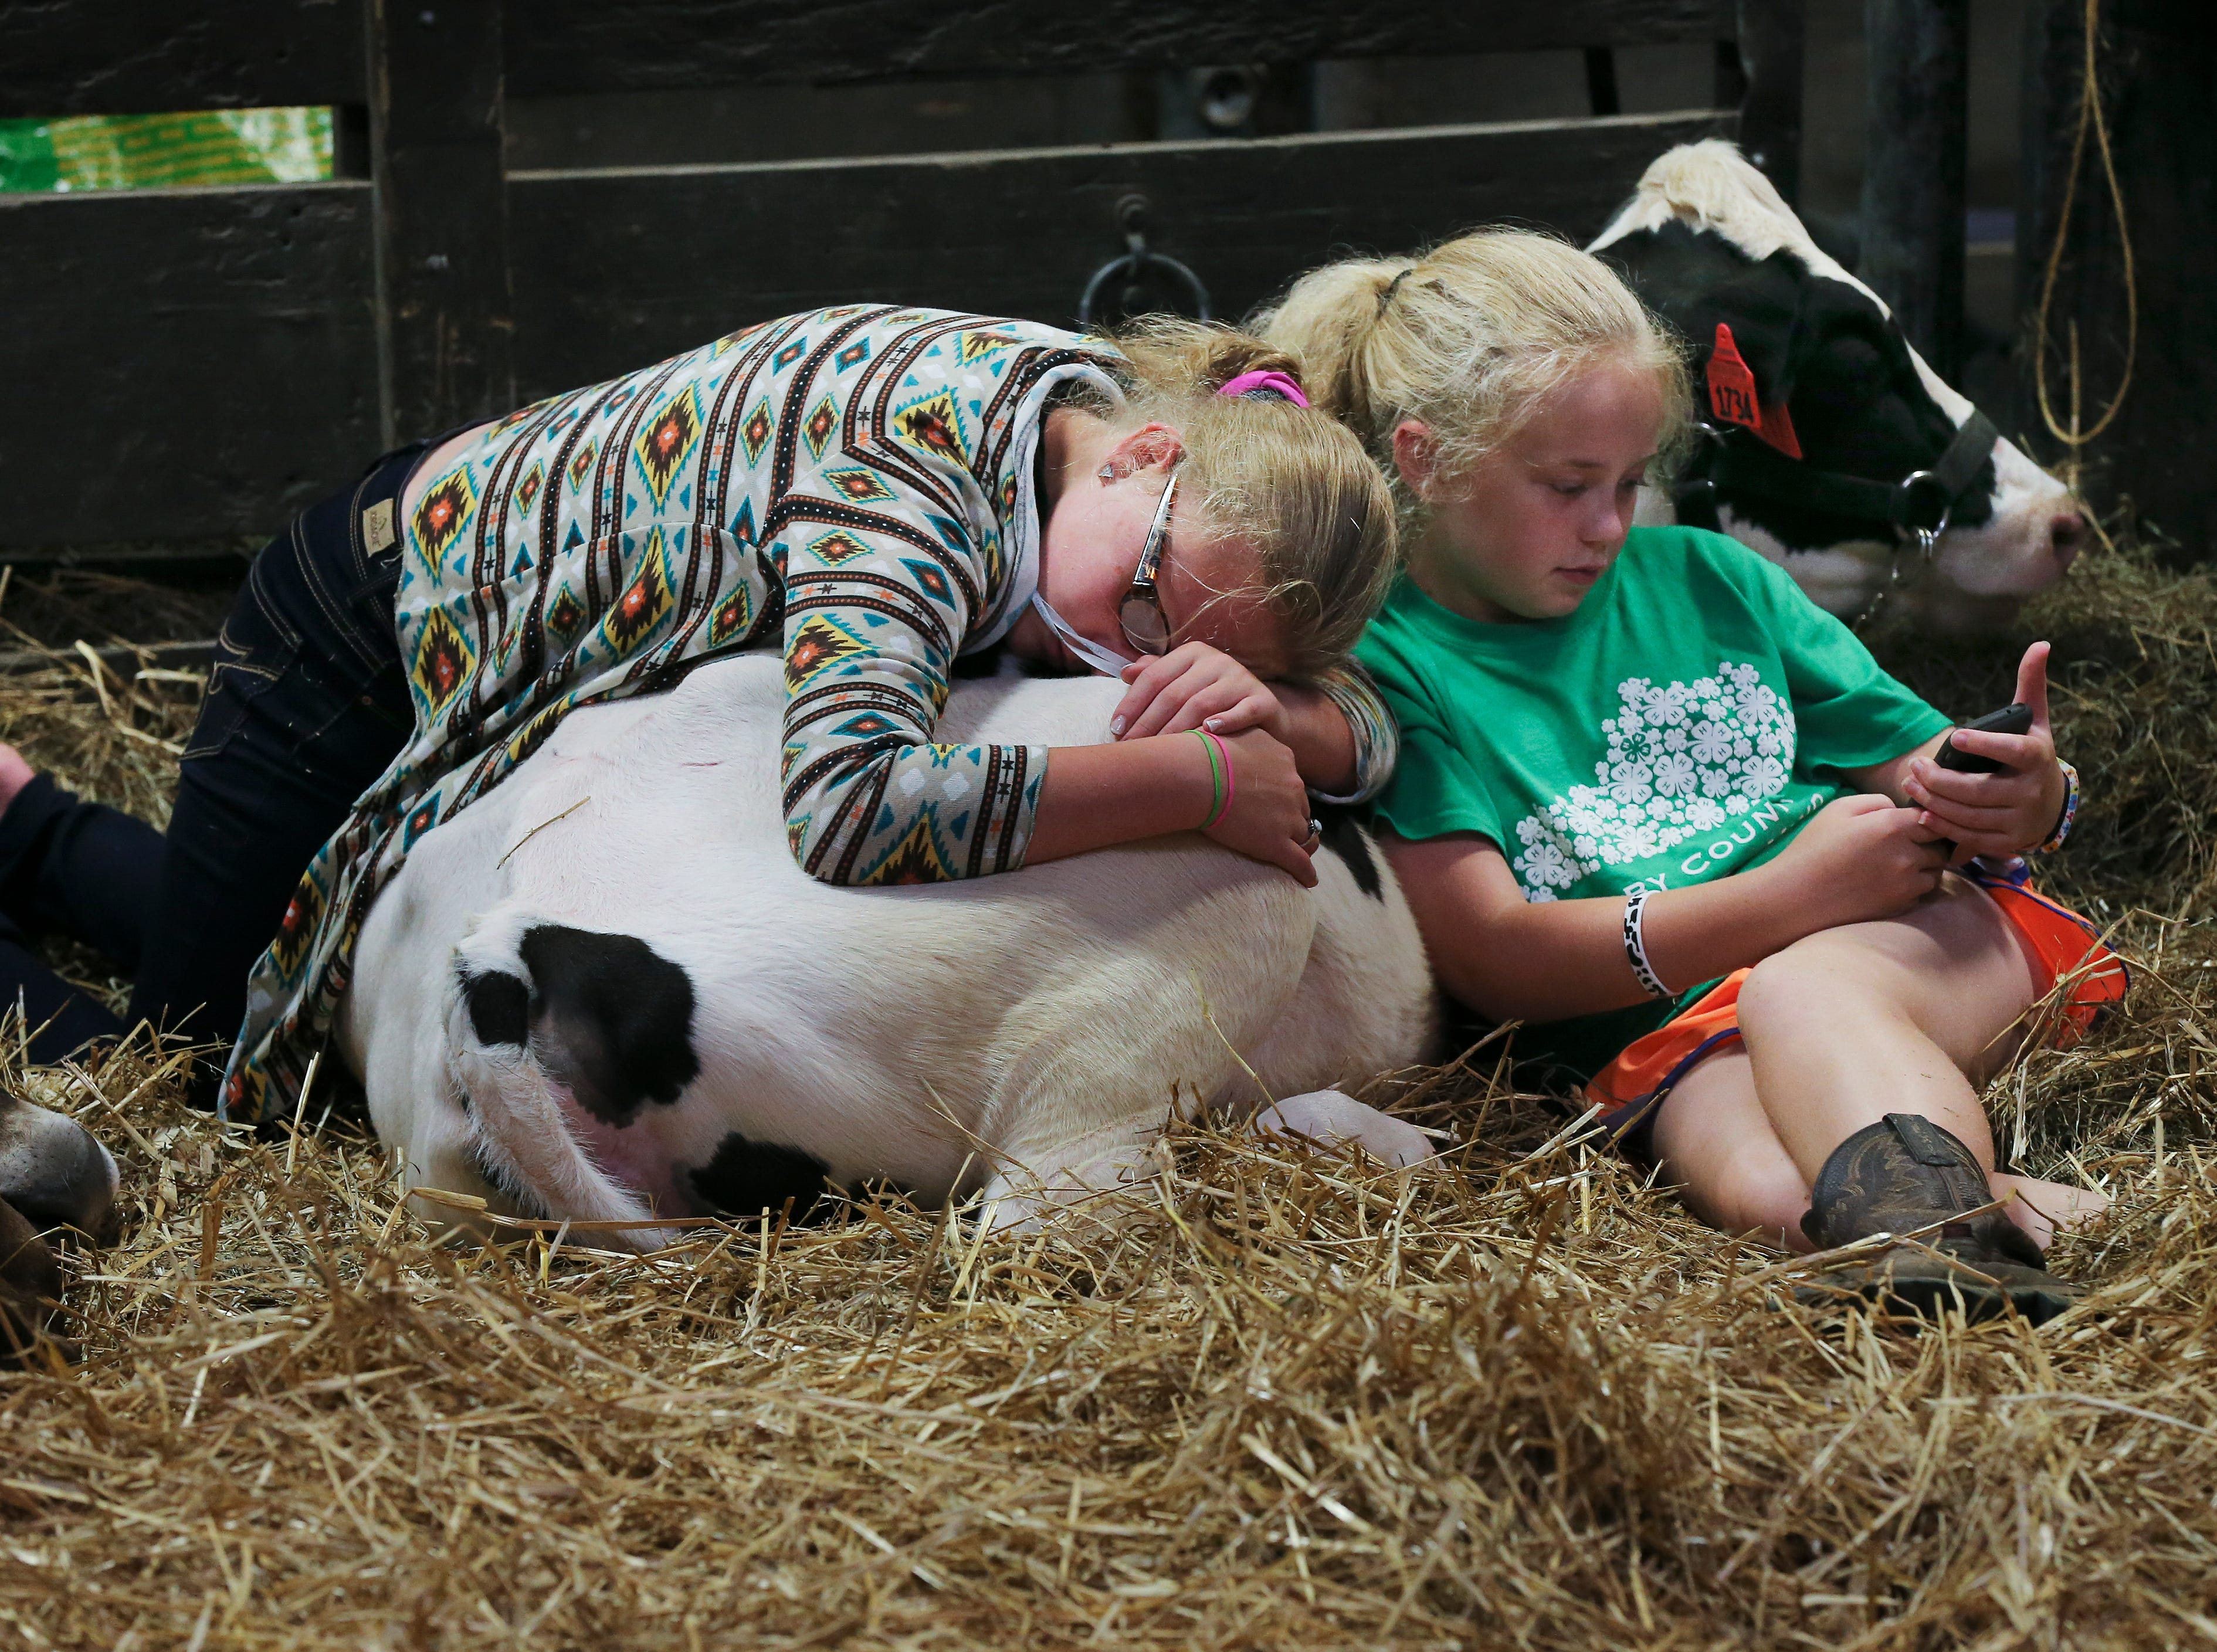 Harley Dempsey, 11, left, and Lilly Phillips, 12, relax with a dairy cow during the first day of the Kentucky State Fair.